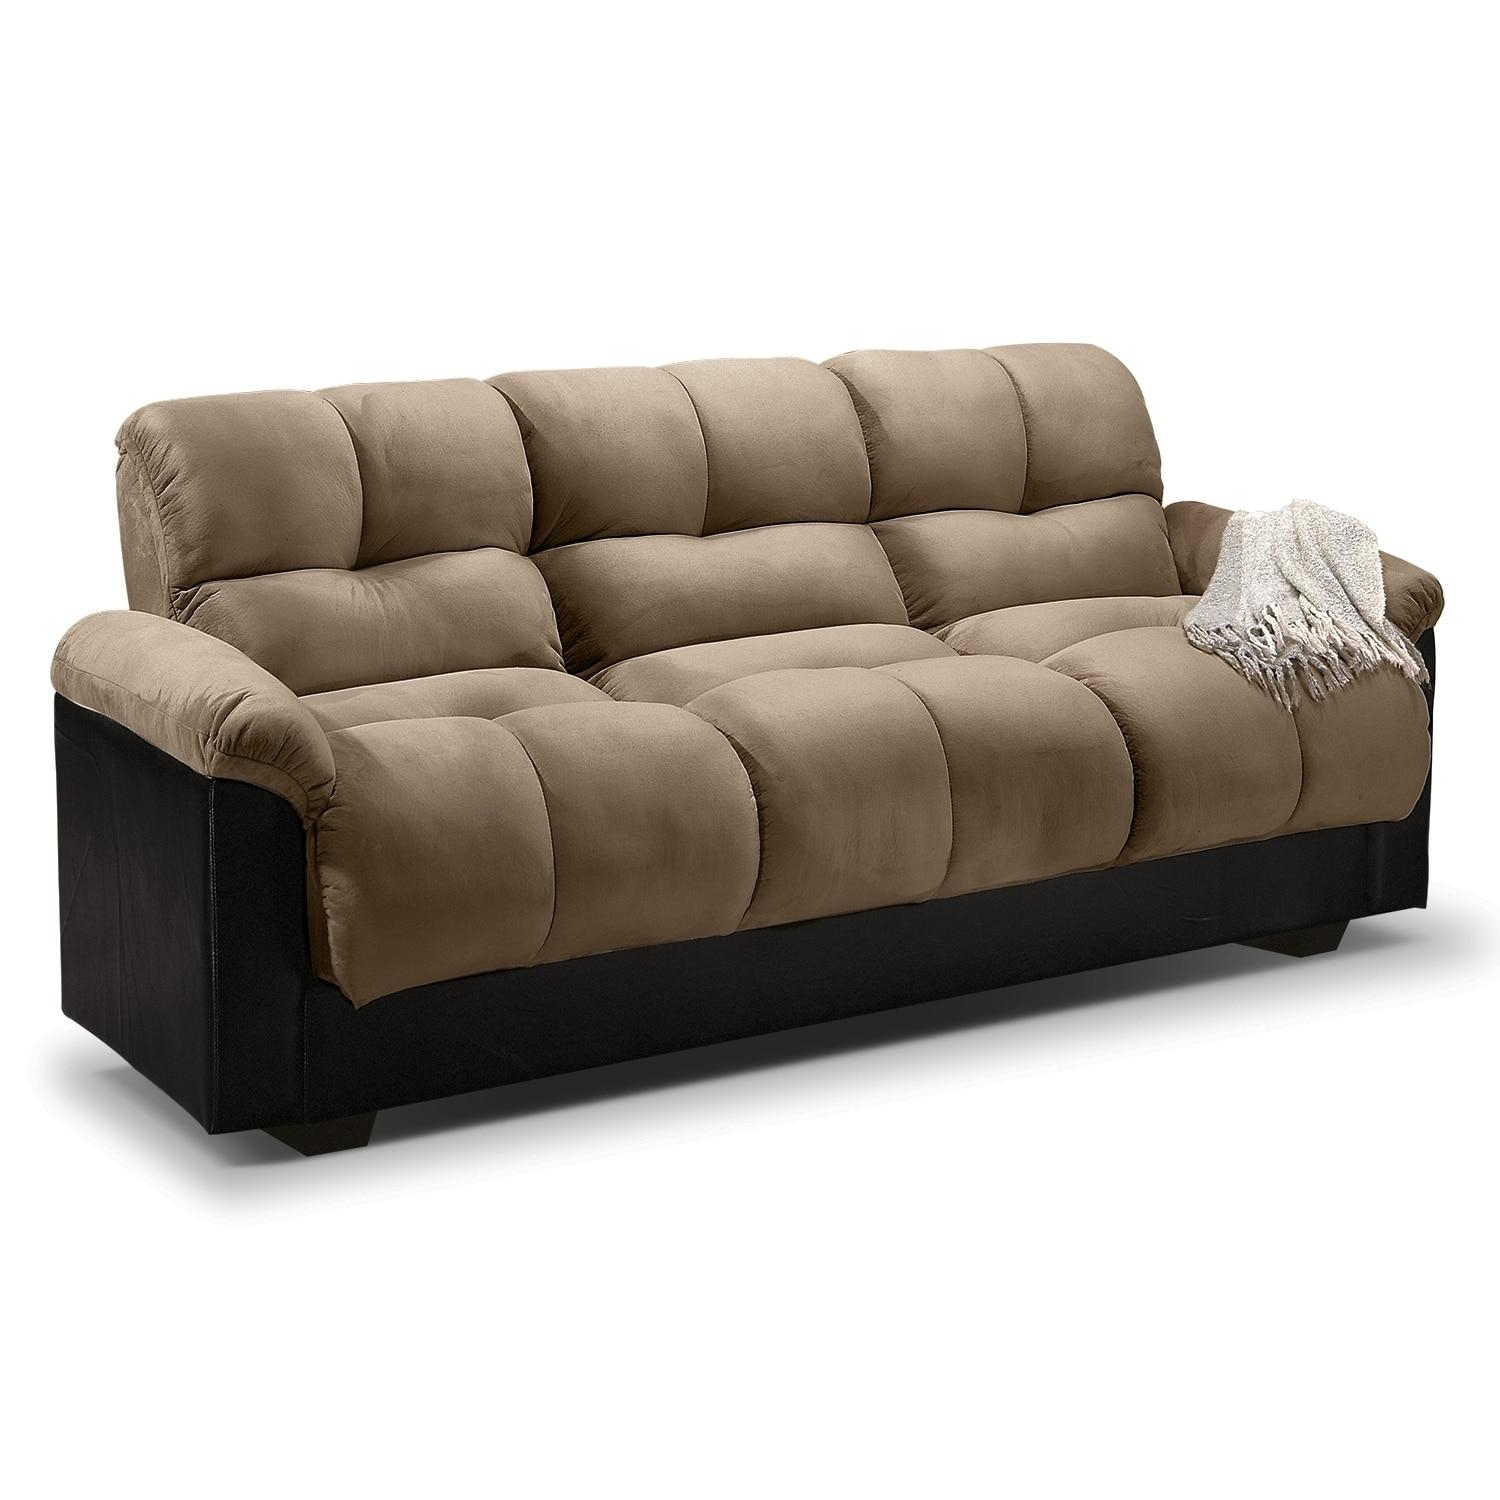 Sofa: Modern Look With A Low Profile Style With Walmart Sofa Bed Inside Target Couch Beds (Image 11 of 20)